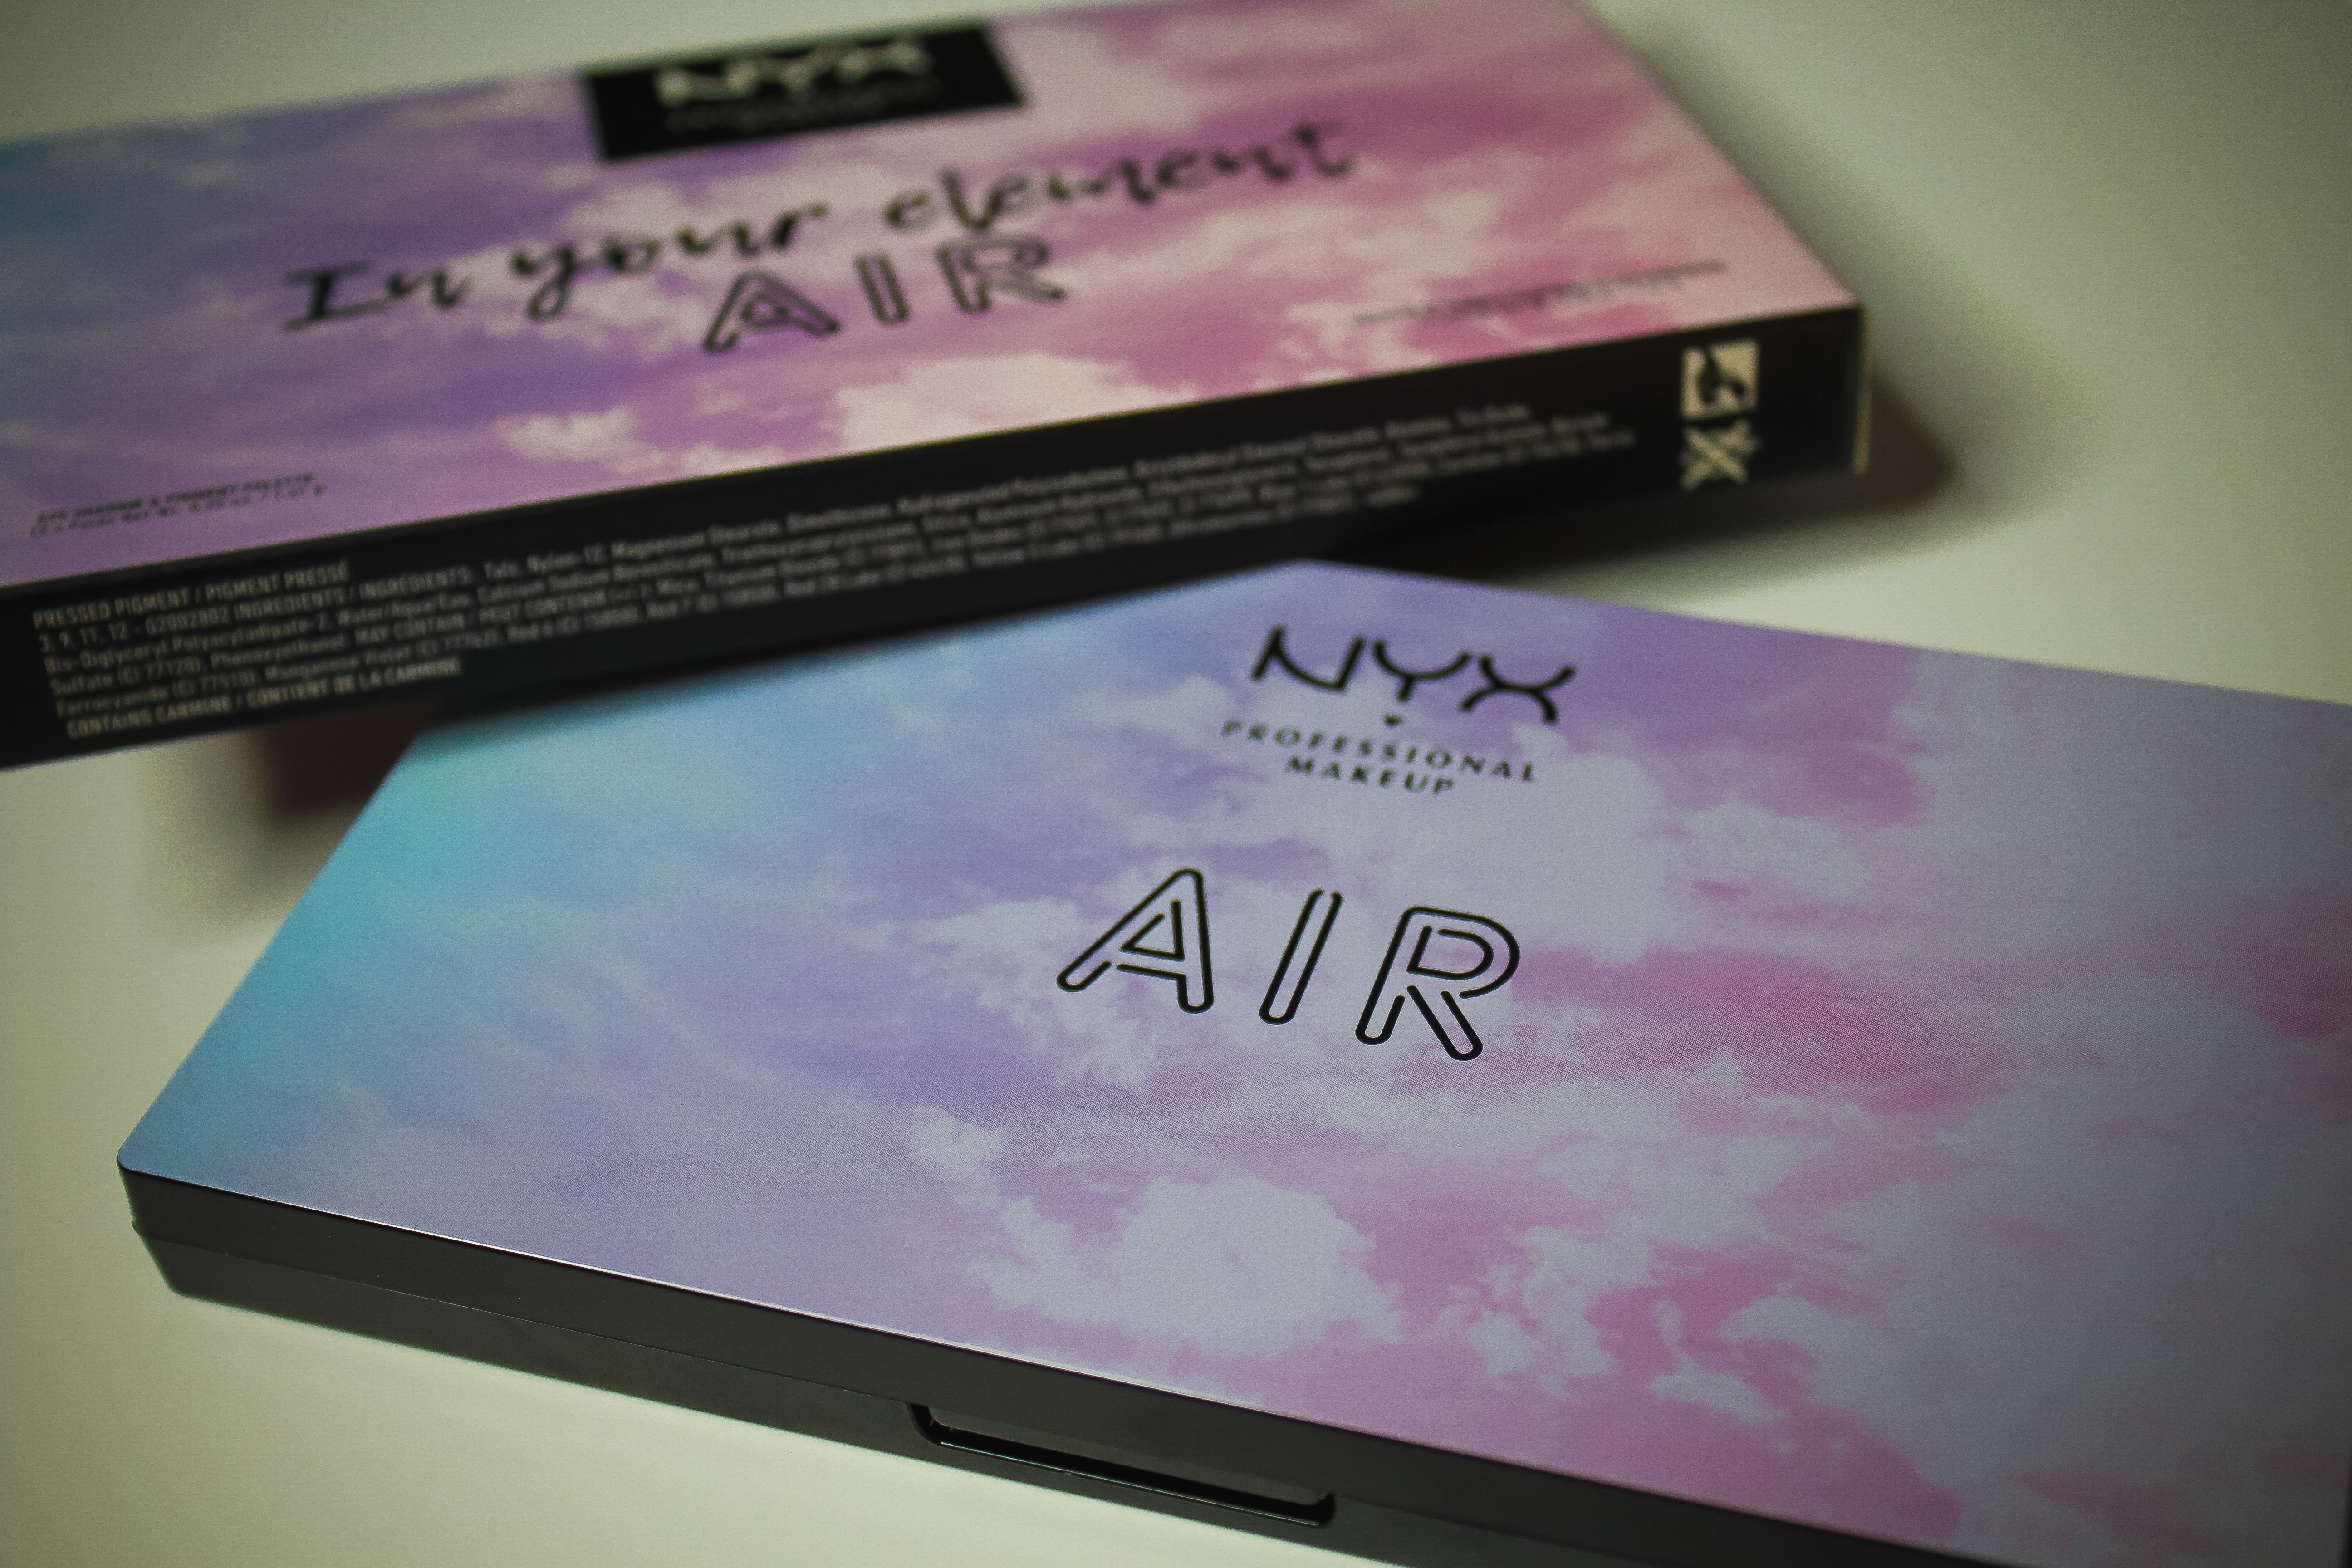 Nyx In Your Element Air Palette